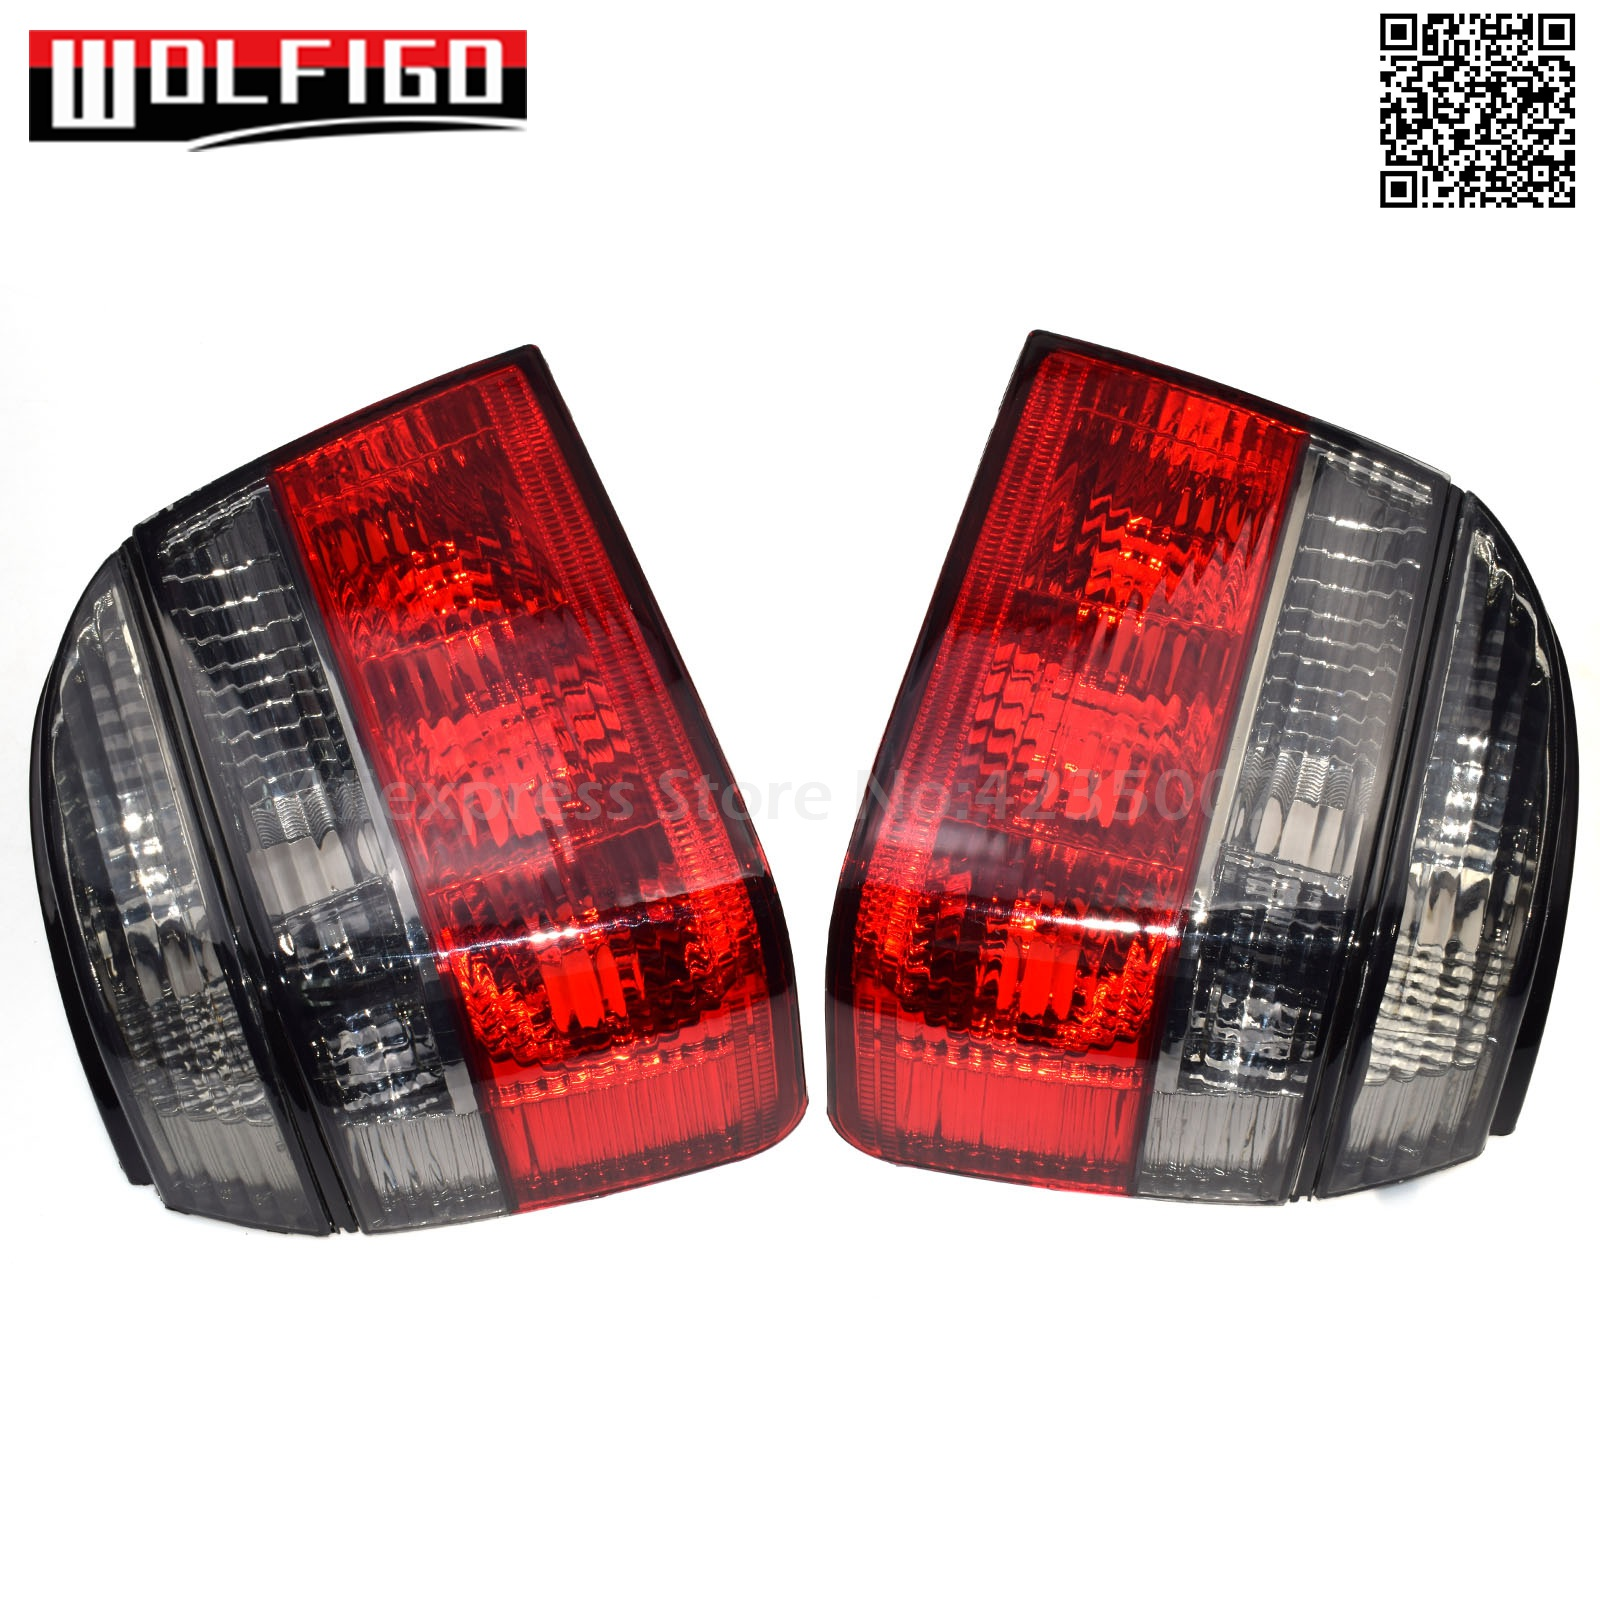 WOLFIGO New Left Right Car Tail <font><b>Lights</b></font> Red Smoke For <font><b>VW</b></font> <font><b>Golf</b></font> <font><b>Mk3</b></font> 1993-1999 1EM945112,1EM945111 image